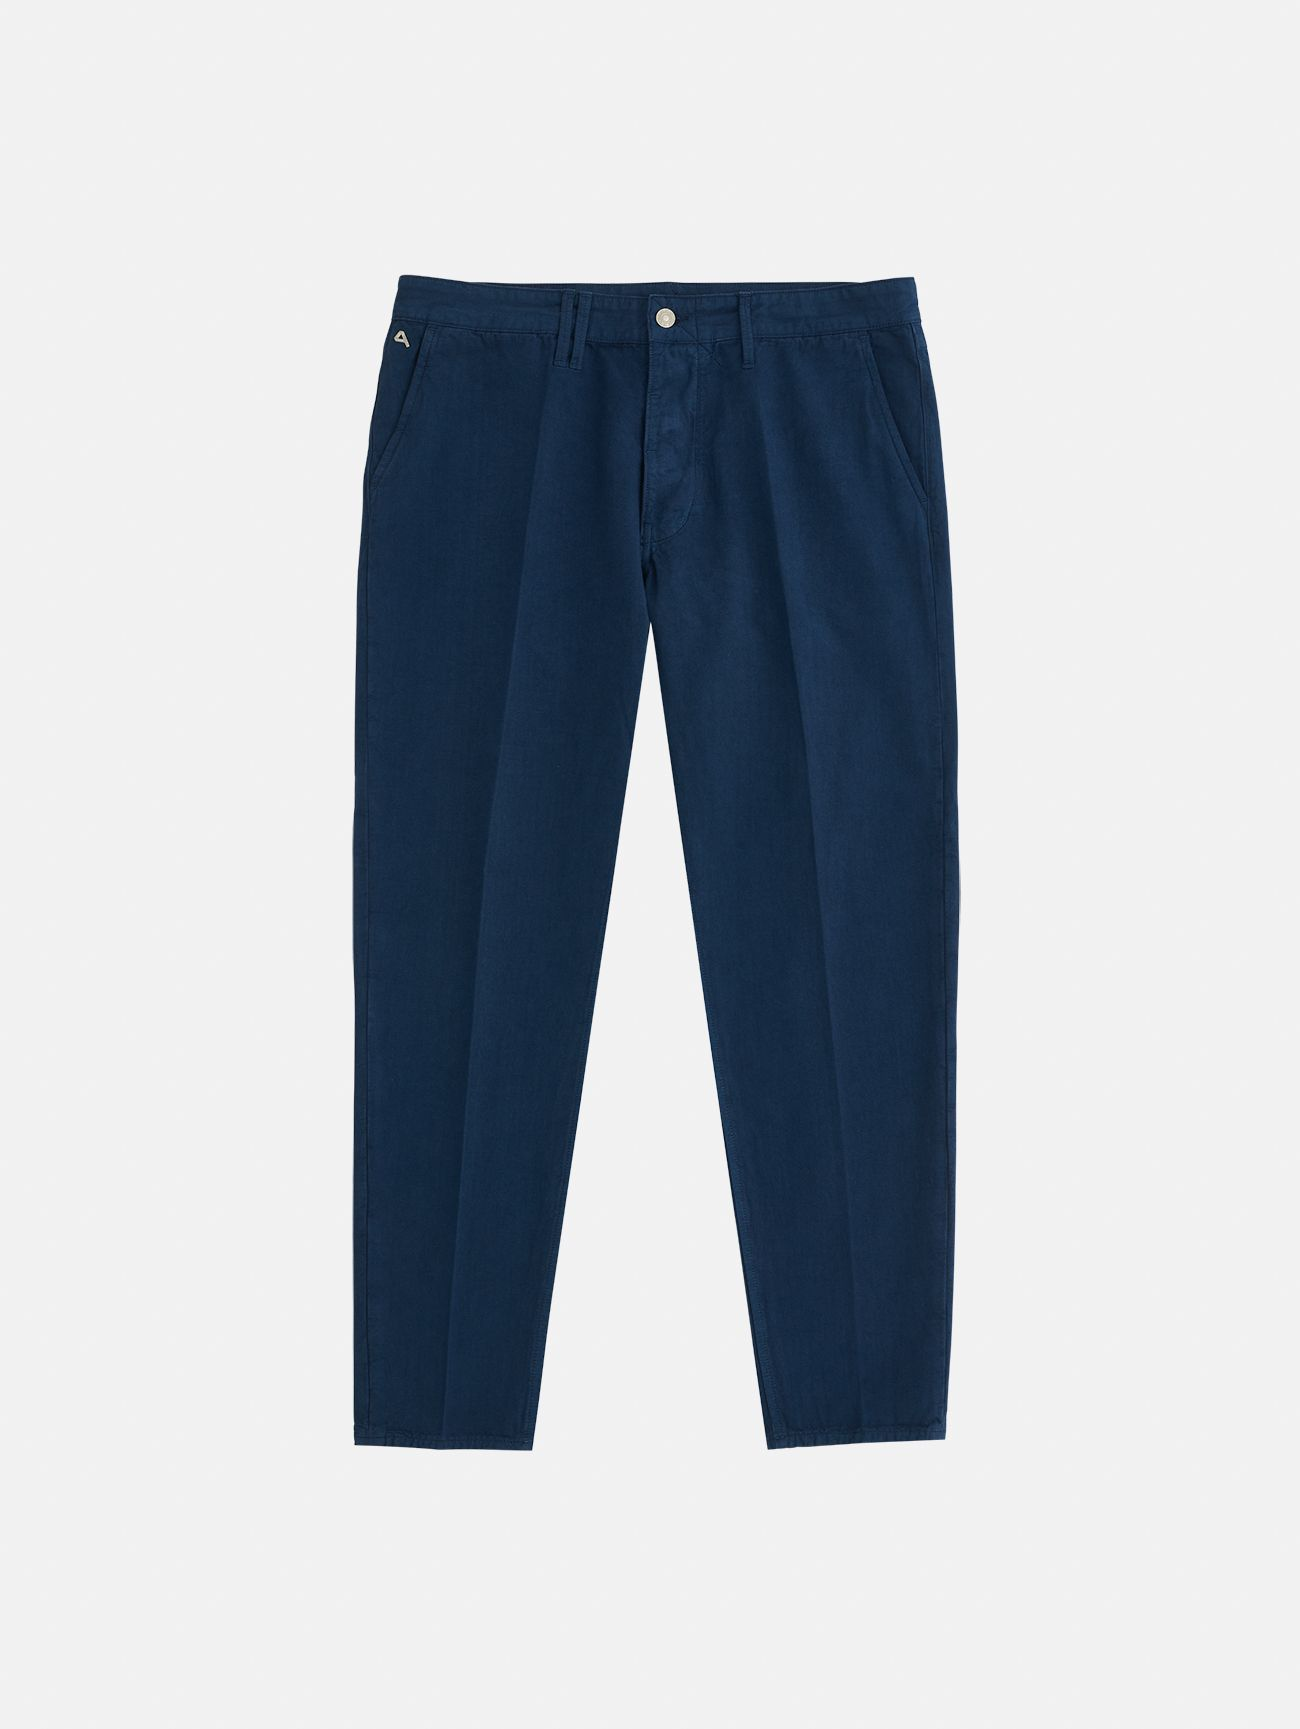 CHINO CROPPED GARMENT DYED NAVY BLUE